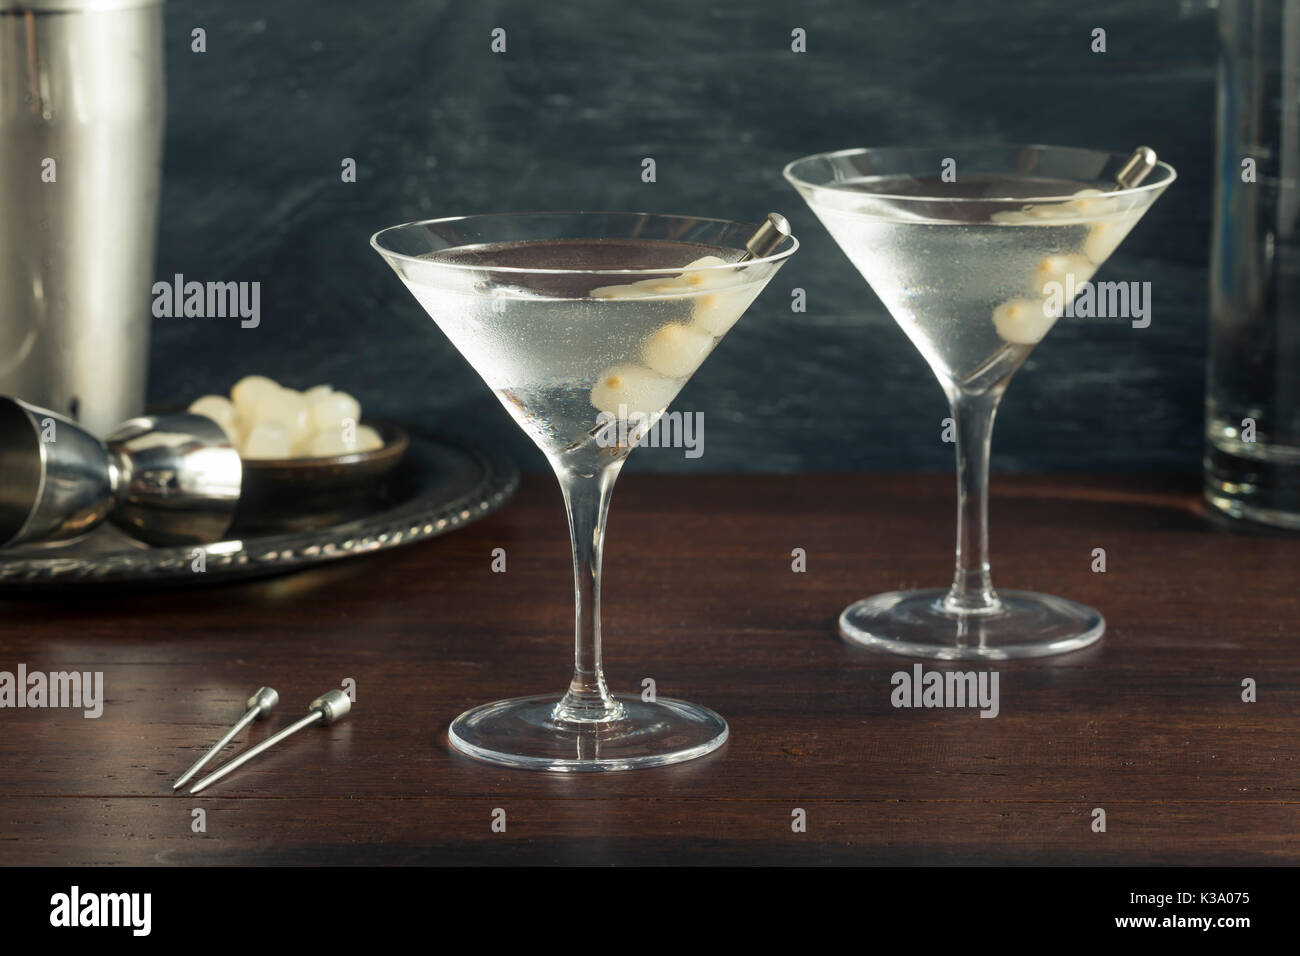 Homemade Boozy Gibson Martini with Cocktail Onions Stock Photo